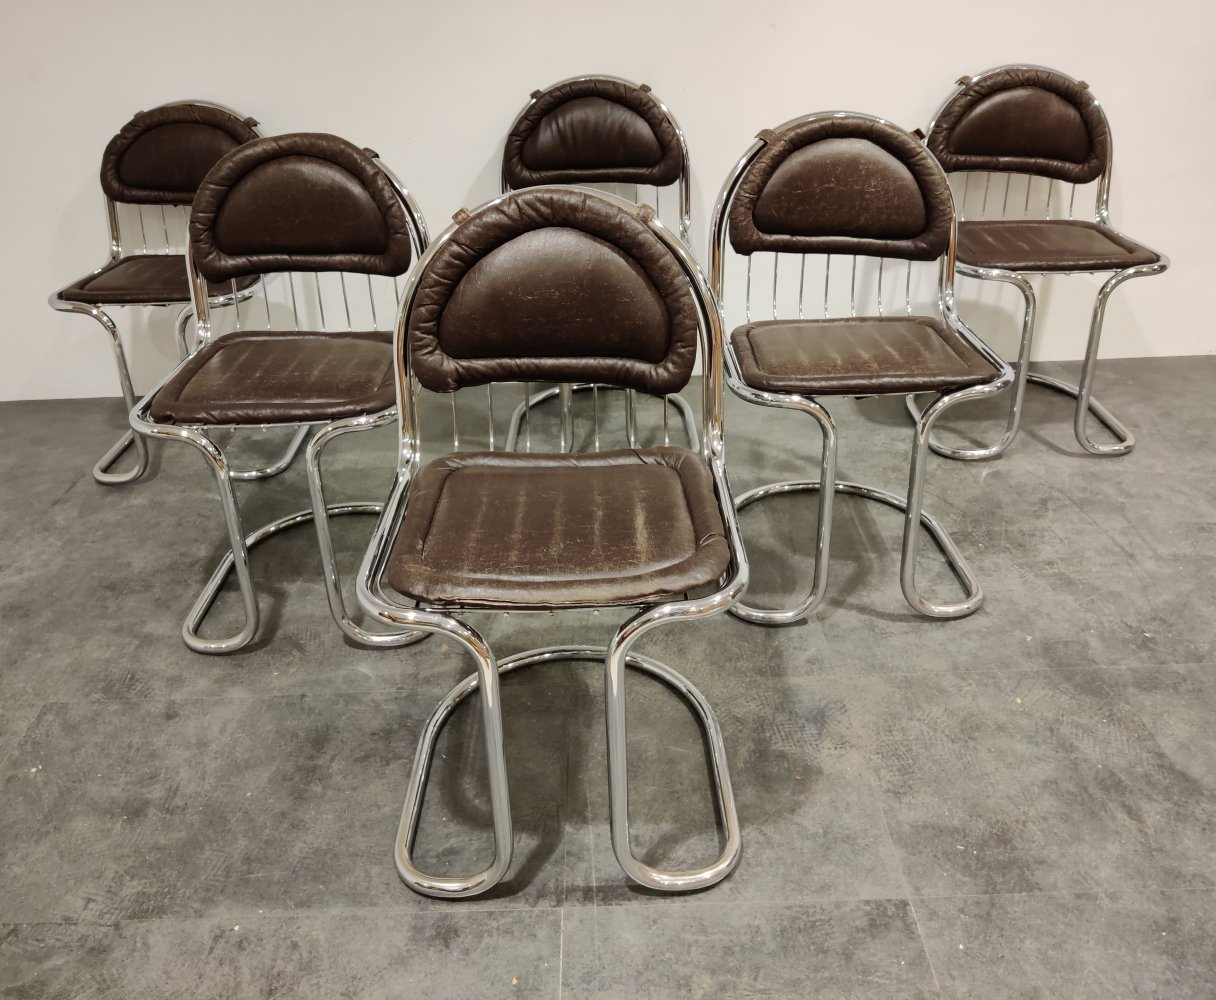 Vintage chrome & leather cantilever dining chairs, 1970s